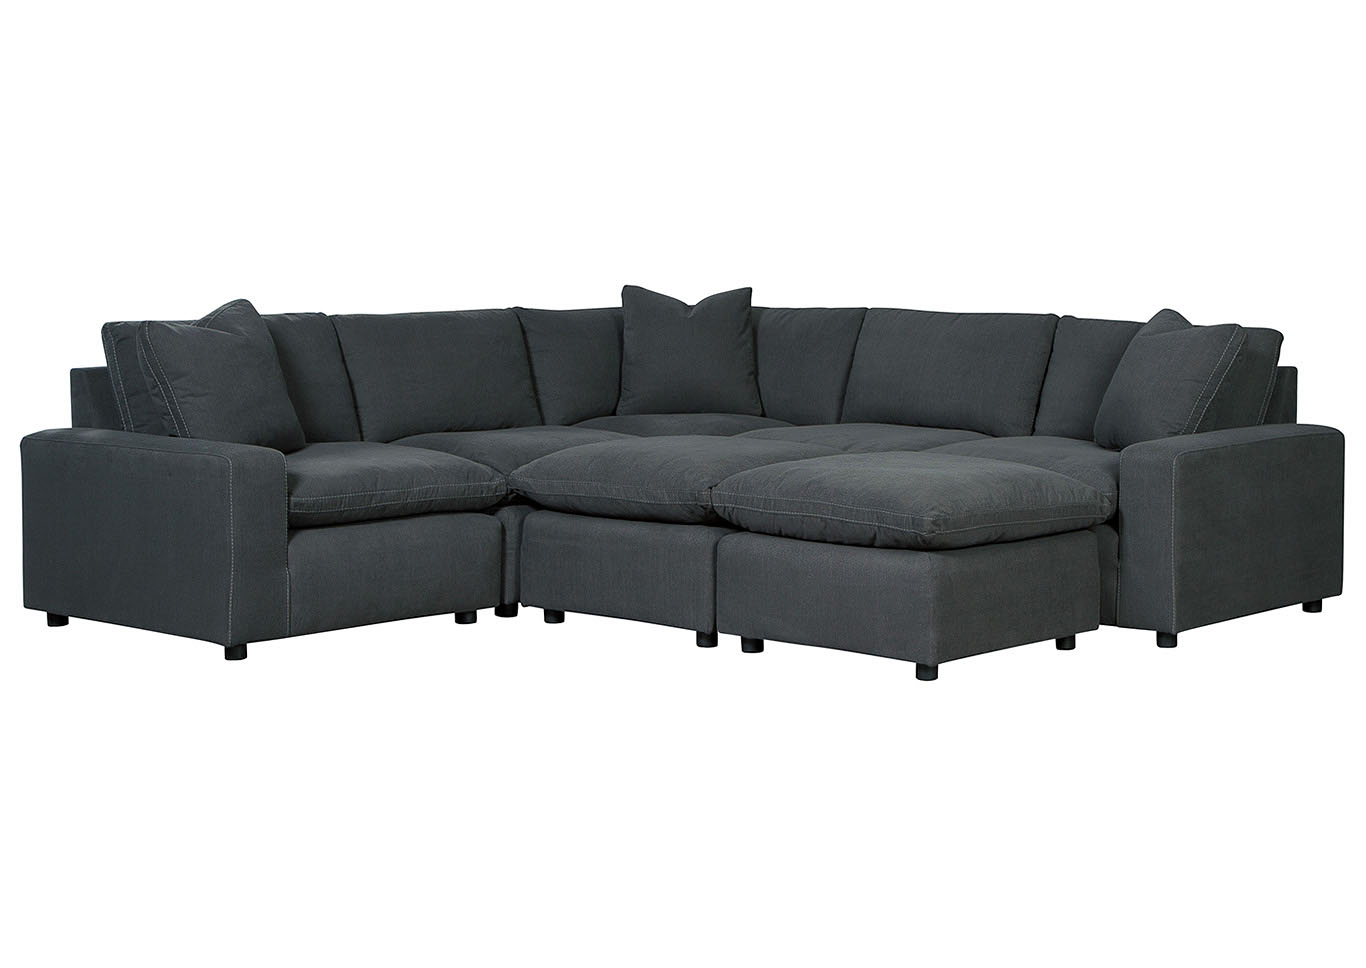 Savesto Charcoal 5 Piece Sectional,Signature Design By Ashley